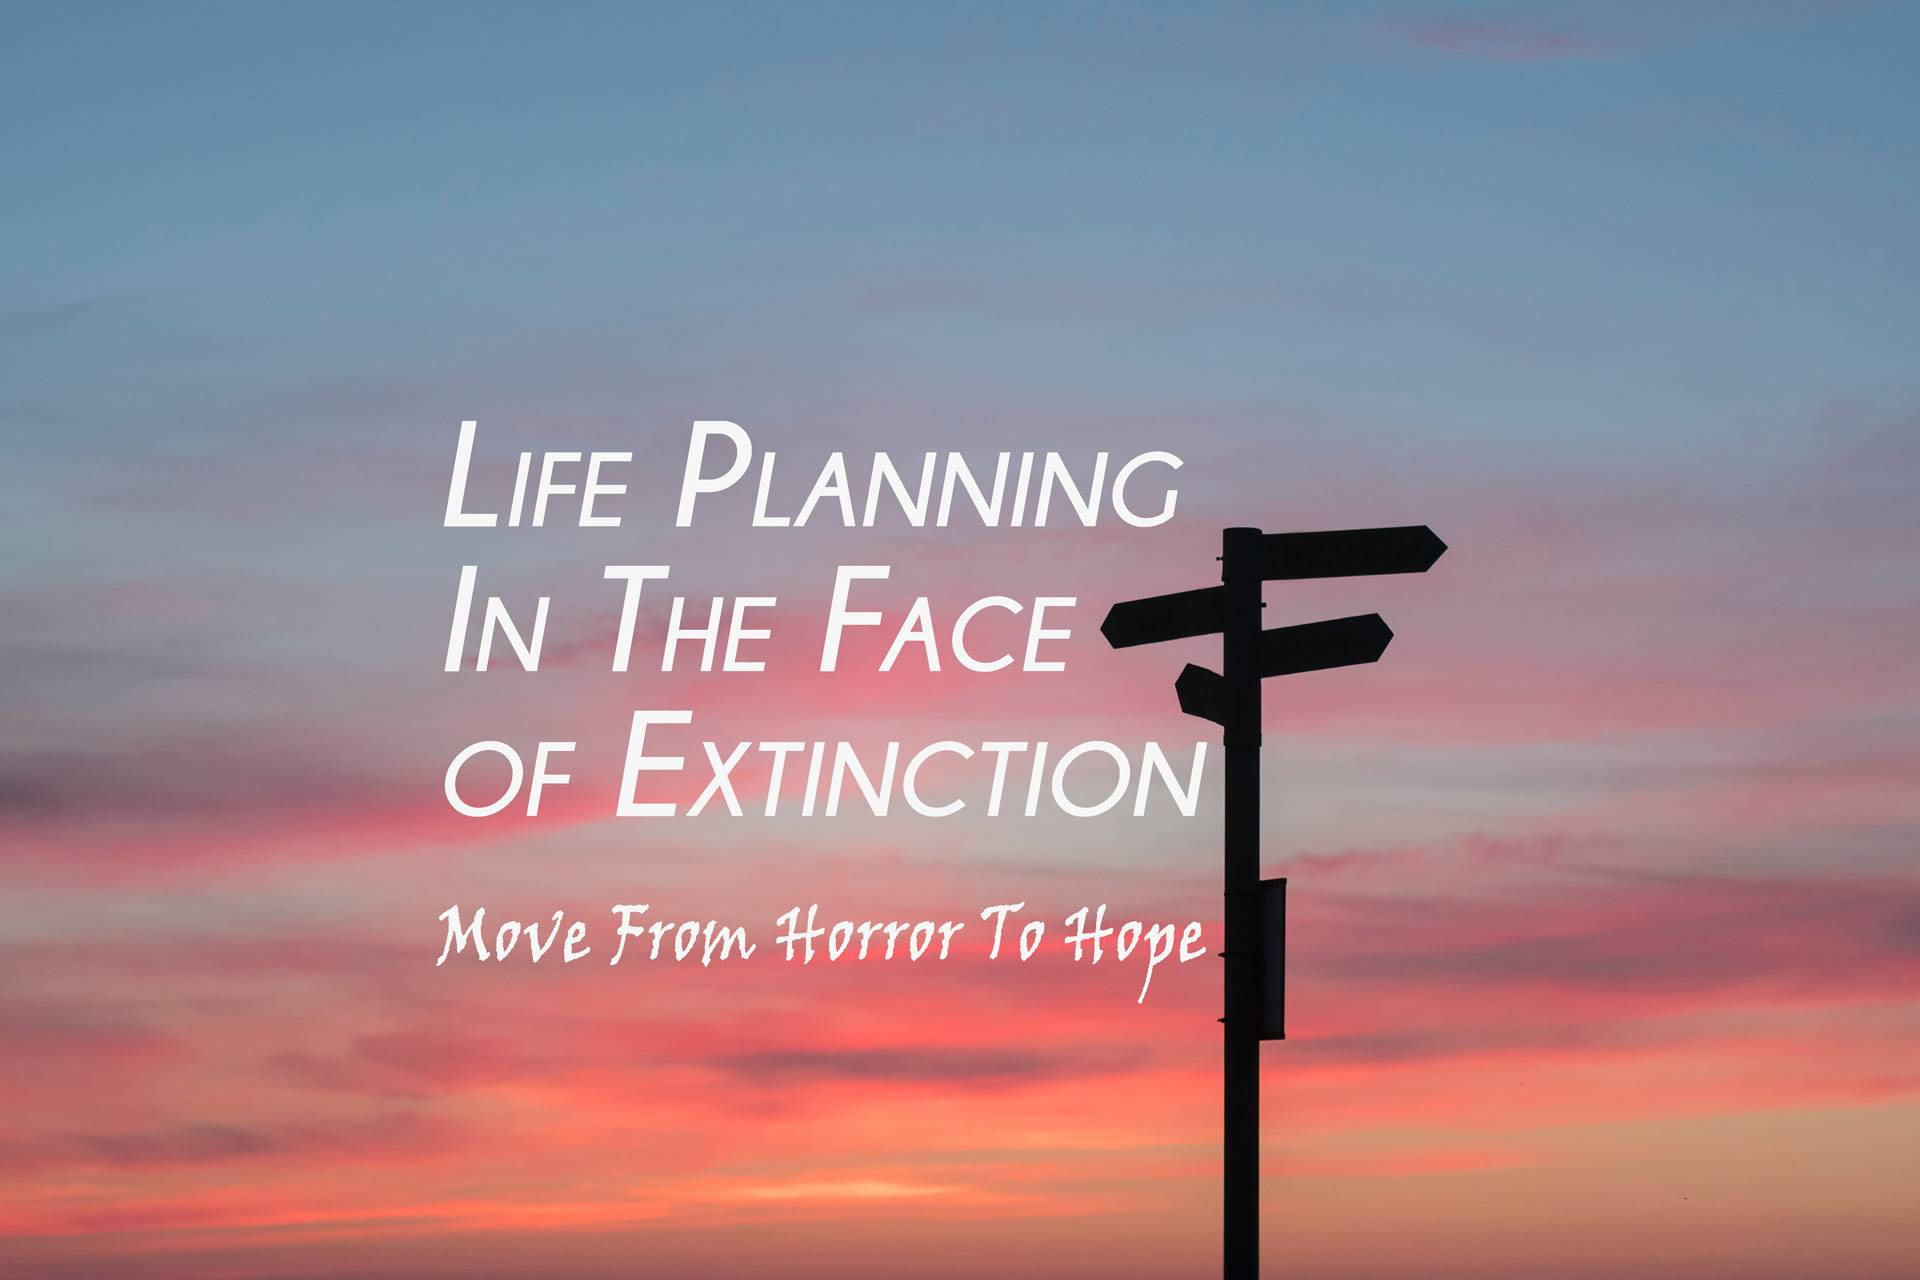 Life Planning In The Face of Extinction – From Horror To Hope